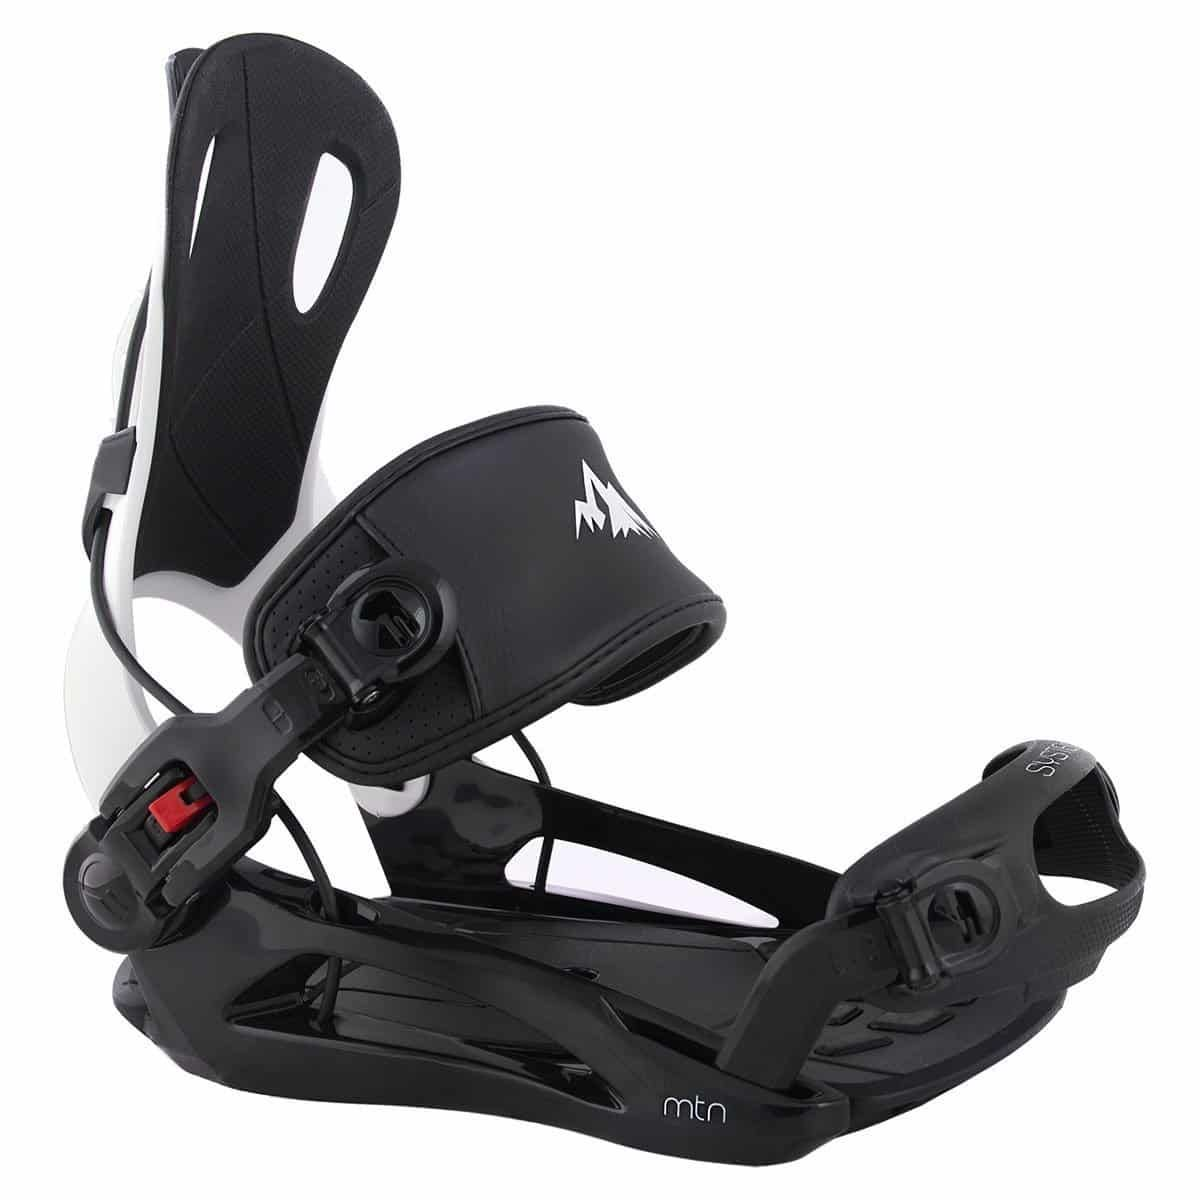 10 Best Snowboard Bindings Reviewed: Top 10 Best Snowboard Bindings In 2020